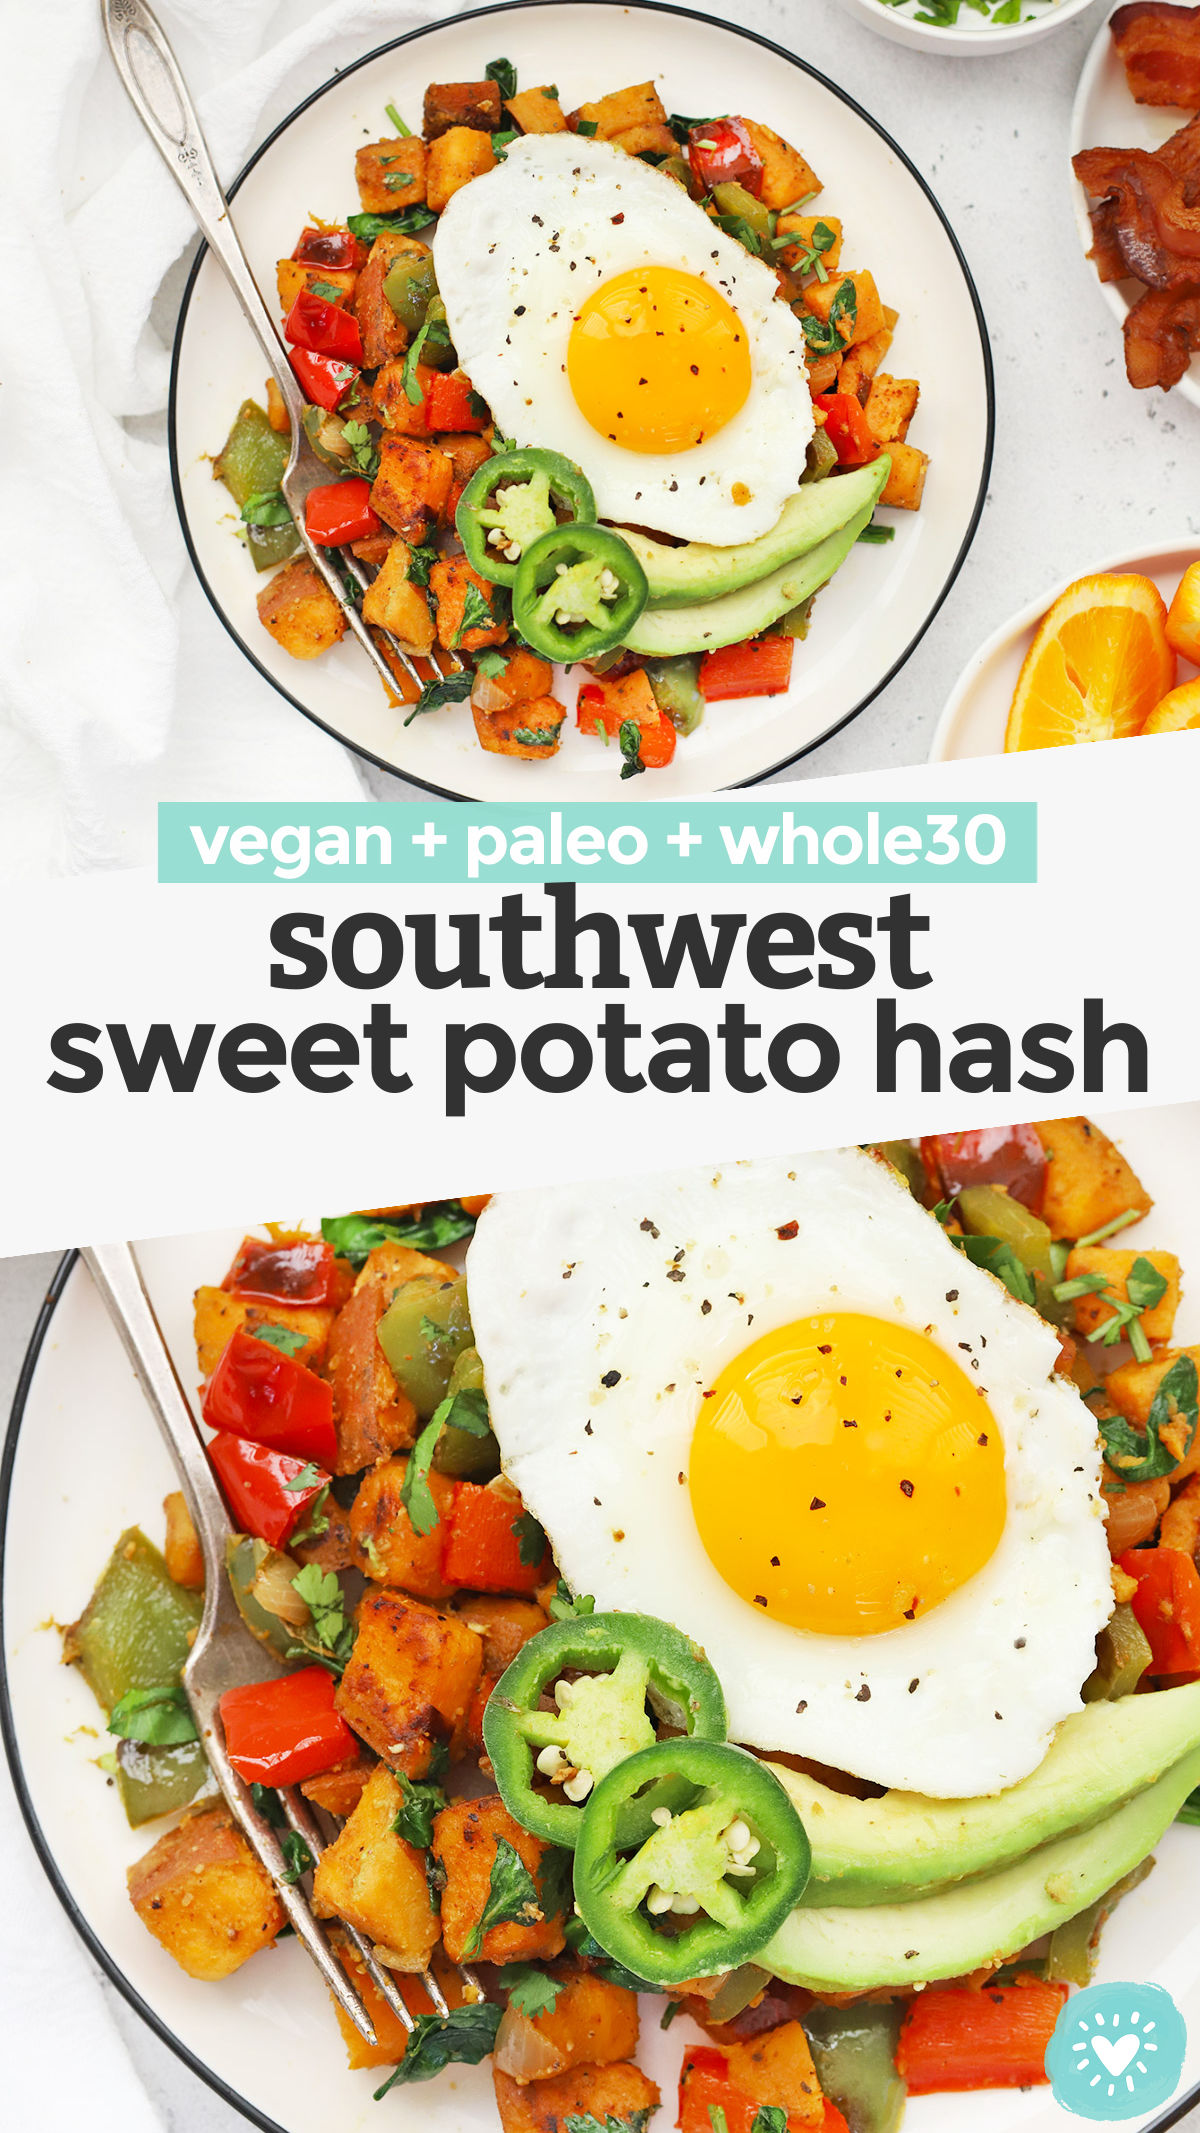 Sweet Potato Hash - This Southwest Sweet Potato Hash has a blend of warm spices, colorful veggies, and will keep you satisfied all morning long. A delicious, healthy breakfast any day of the week! (Vegan, Paleo, Whole30) // Paleo Sweet Potato Hash // Whole30 Sweet Potato Hash // Vegan Sweet Potato Hash // Whole30 breakfast // Paleo breakfast #healthybreakfast #paleo #vegan #glutenfree #vegetarian #whole30